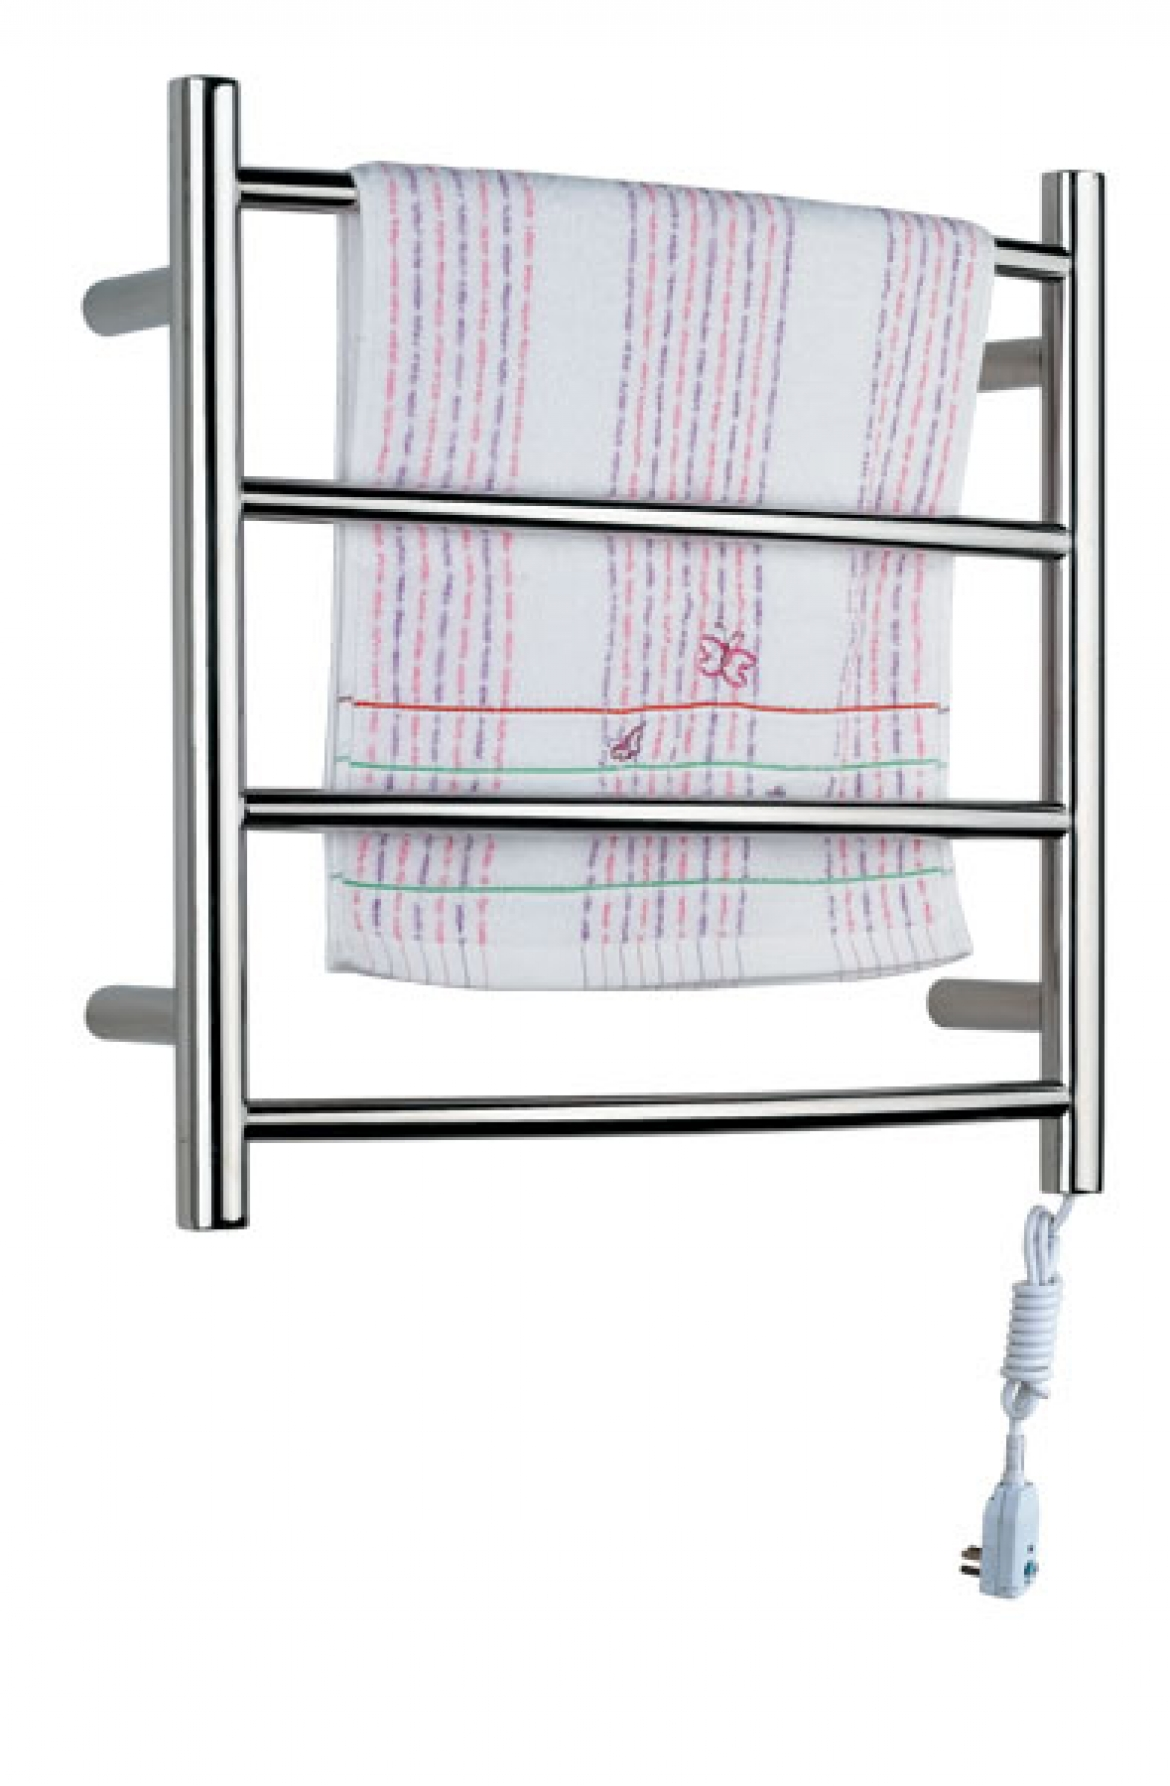 Heated towel rail[XY-G-4R]